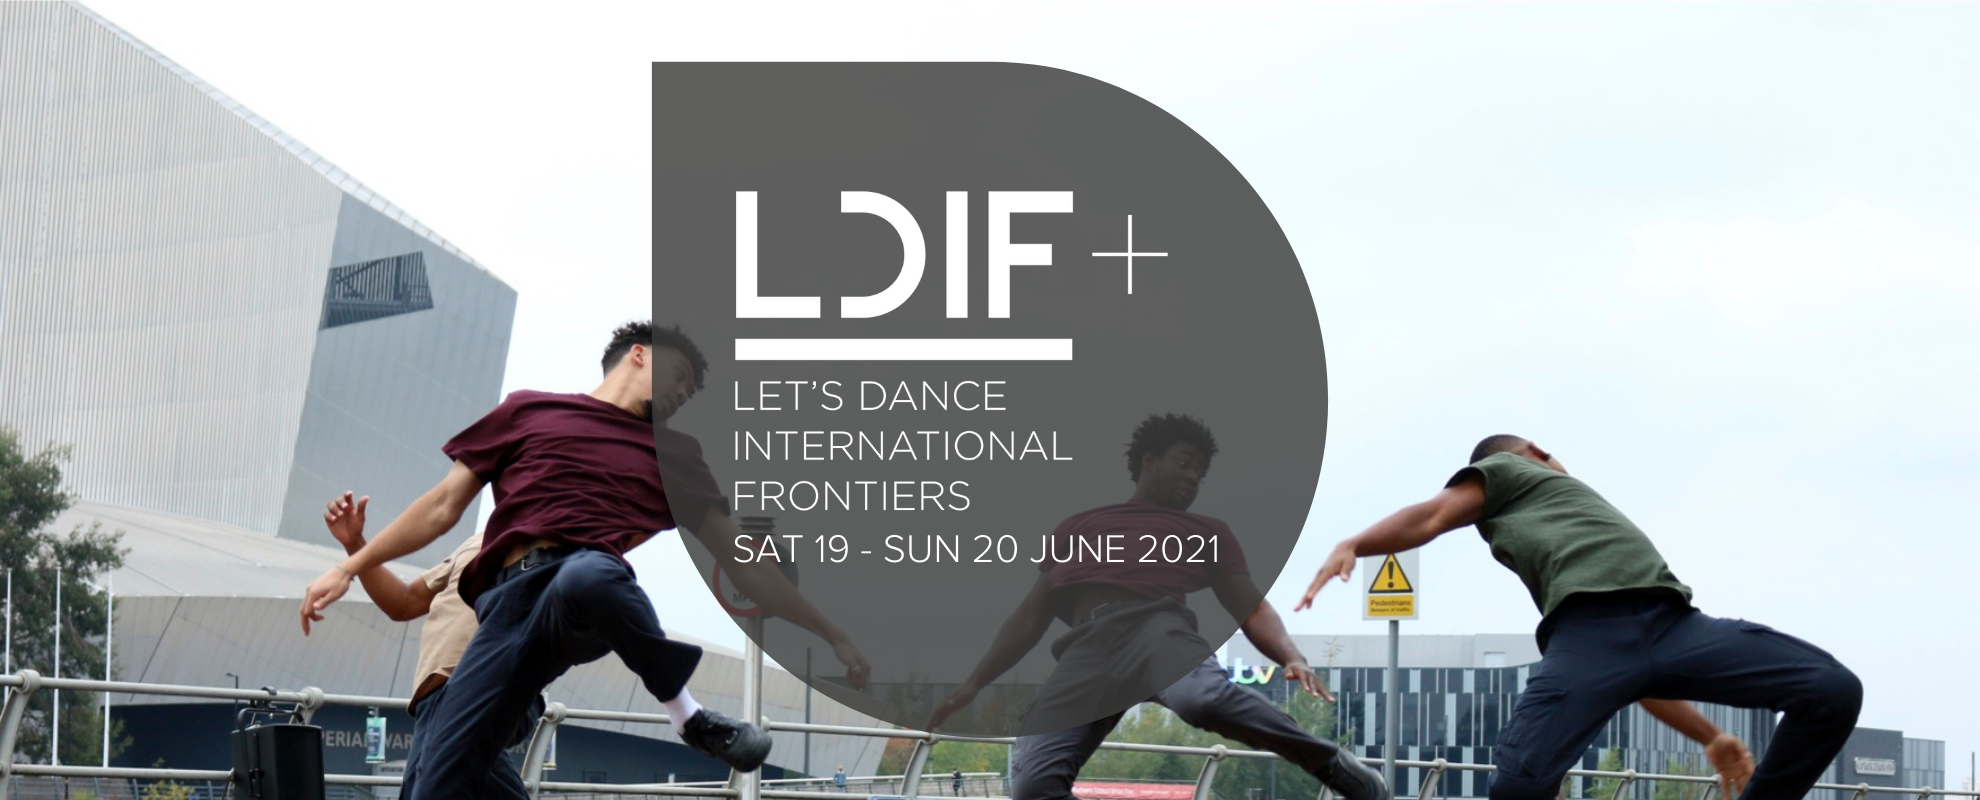 Let's Dance International Frontiers — Page Banner